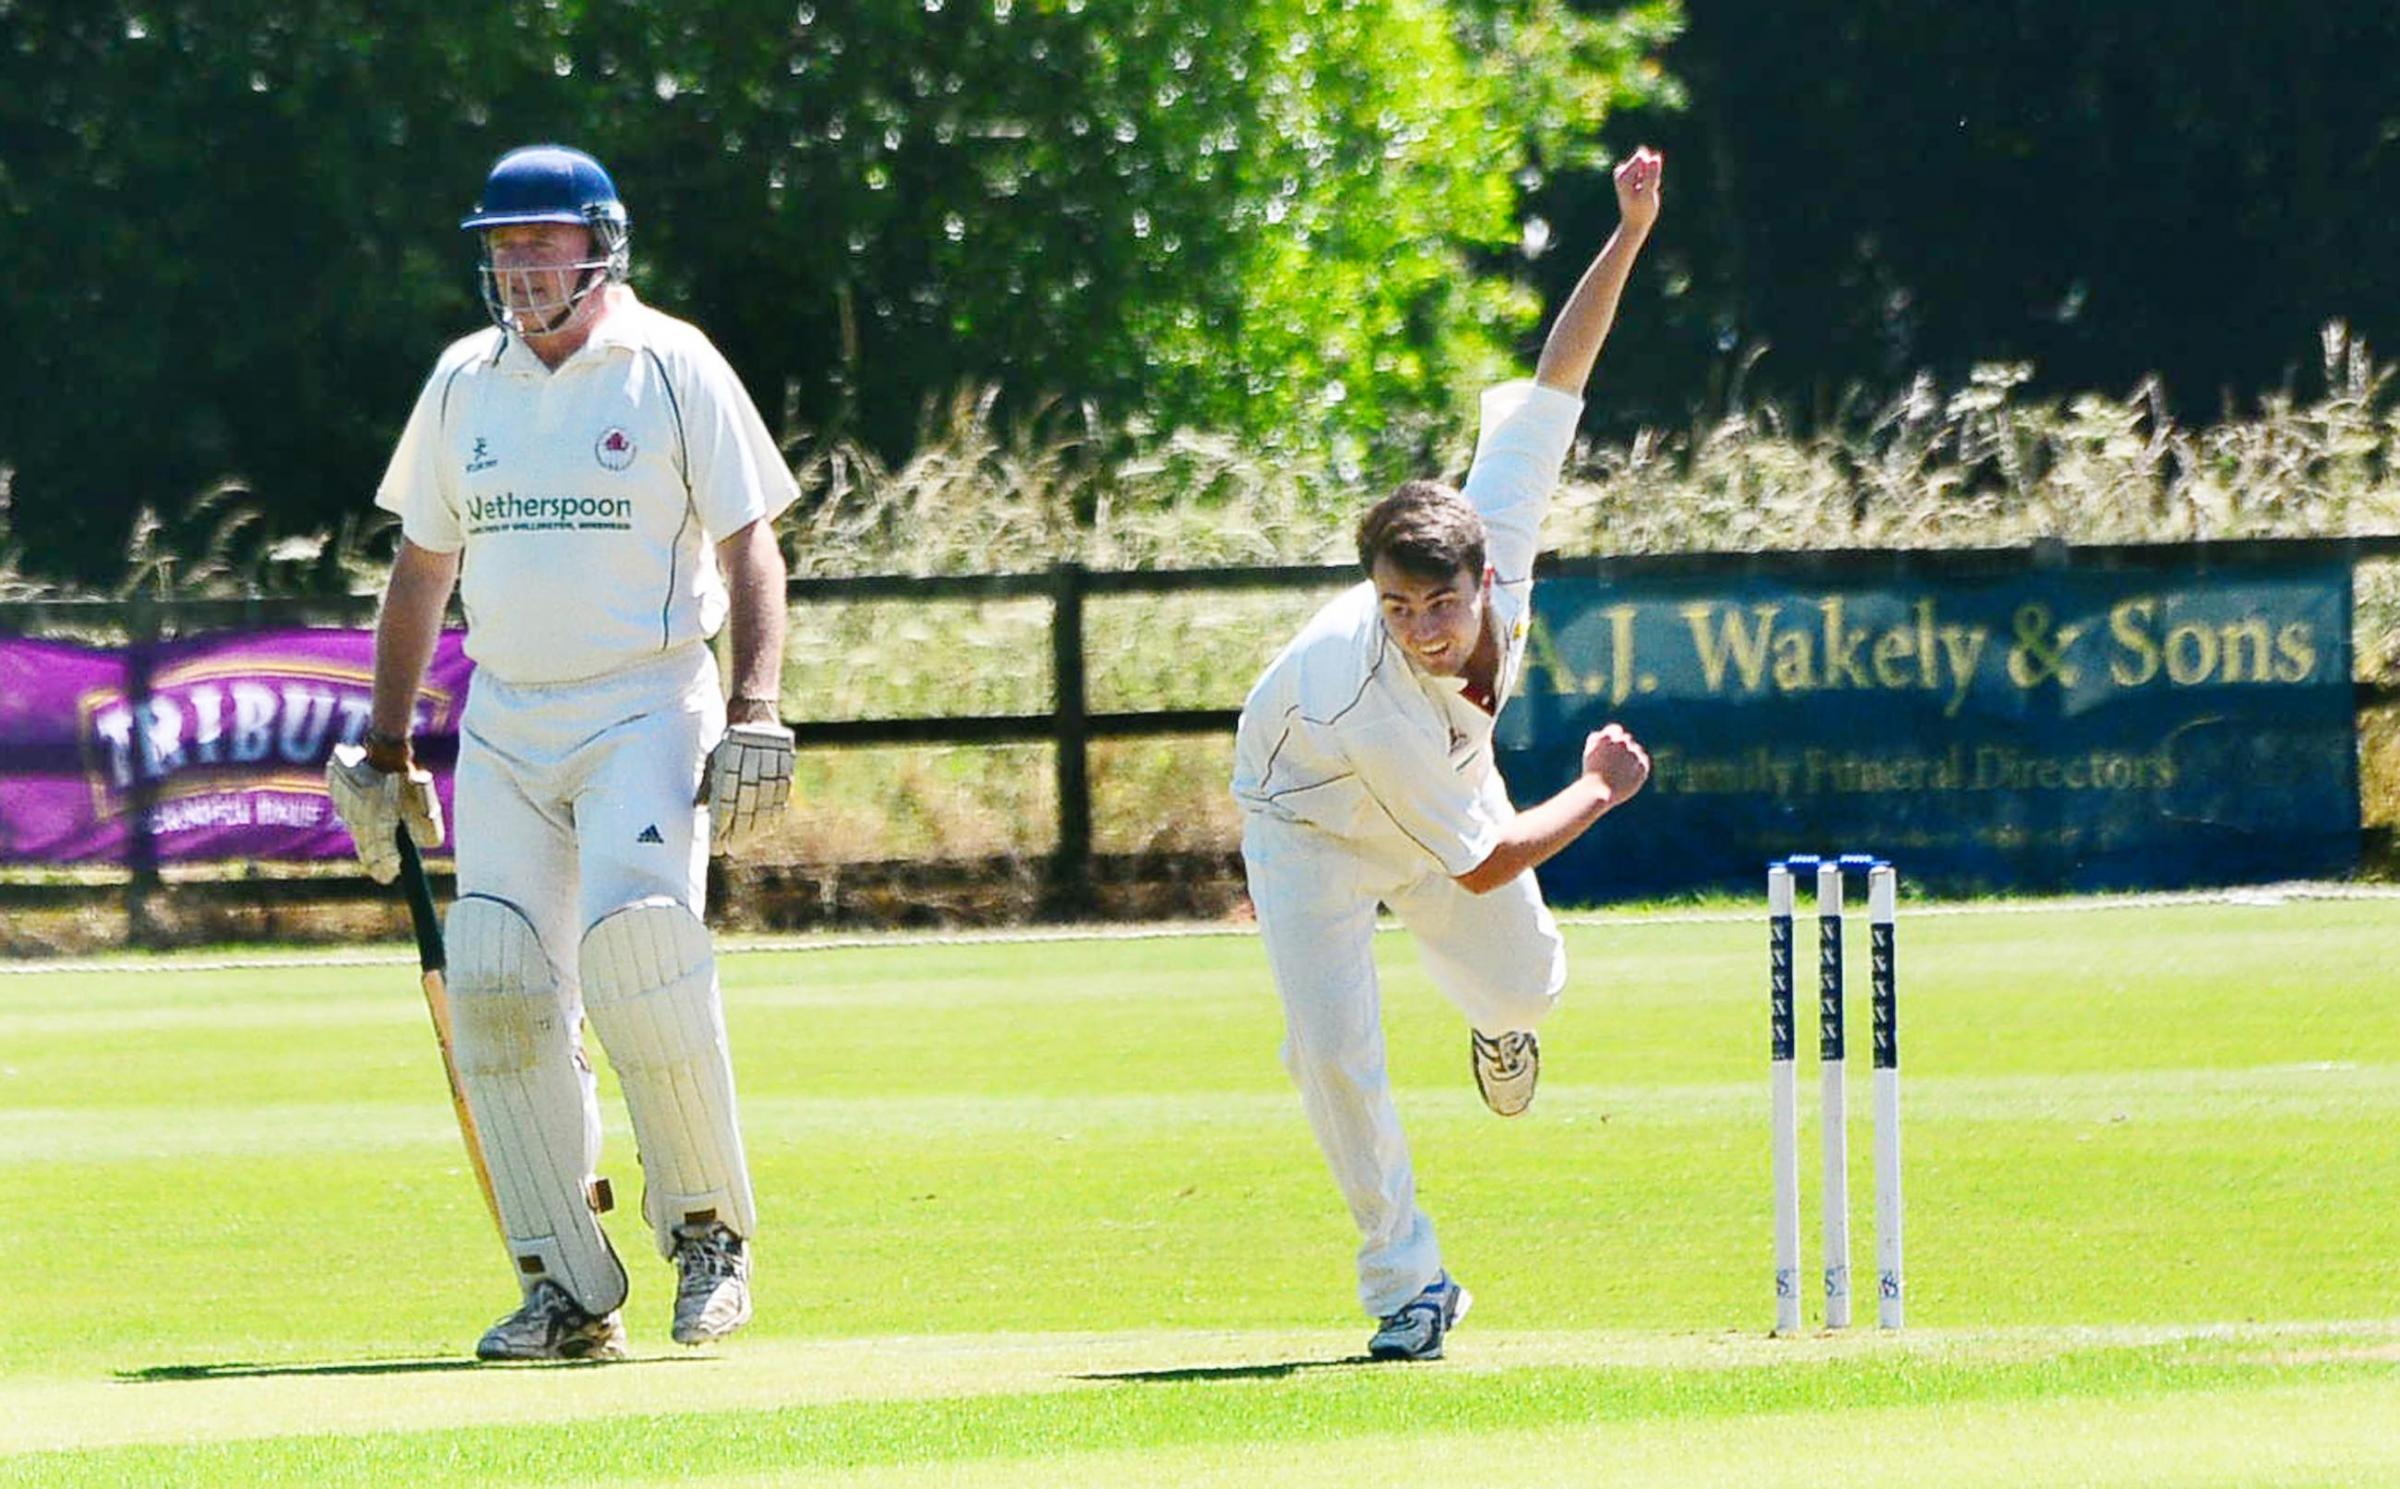 BEATEN: North Perrott bowler Joshua Marshall-James took 2-20 but could not prevent the hosts losing their first match of the season in the league on Saturday, Minehead winning by 64 runs. Pic: Steve Richardson